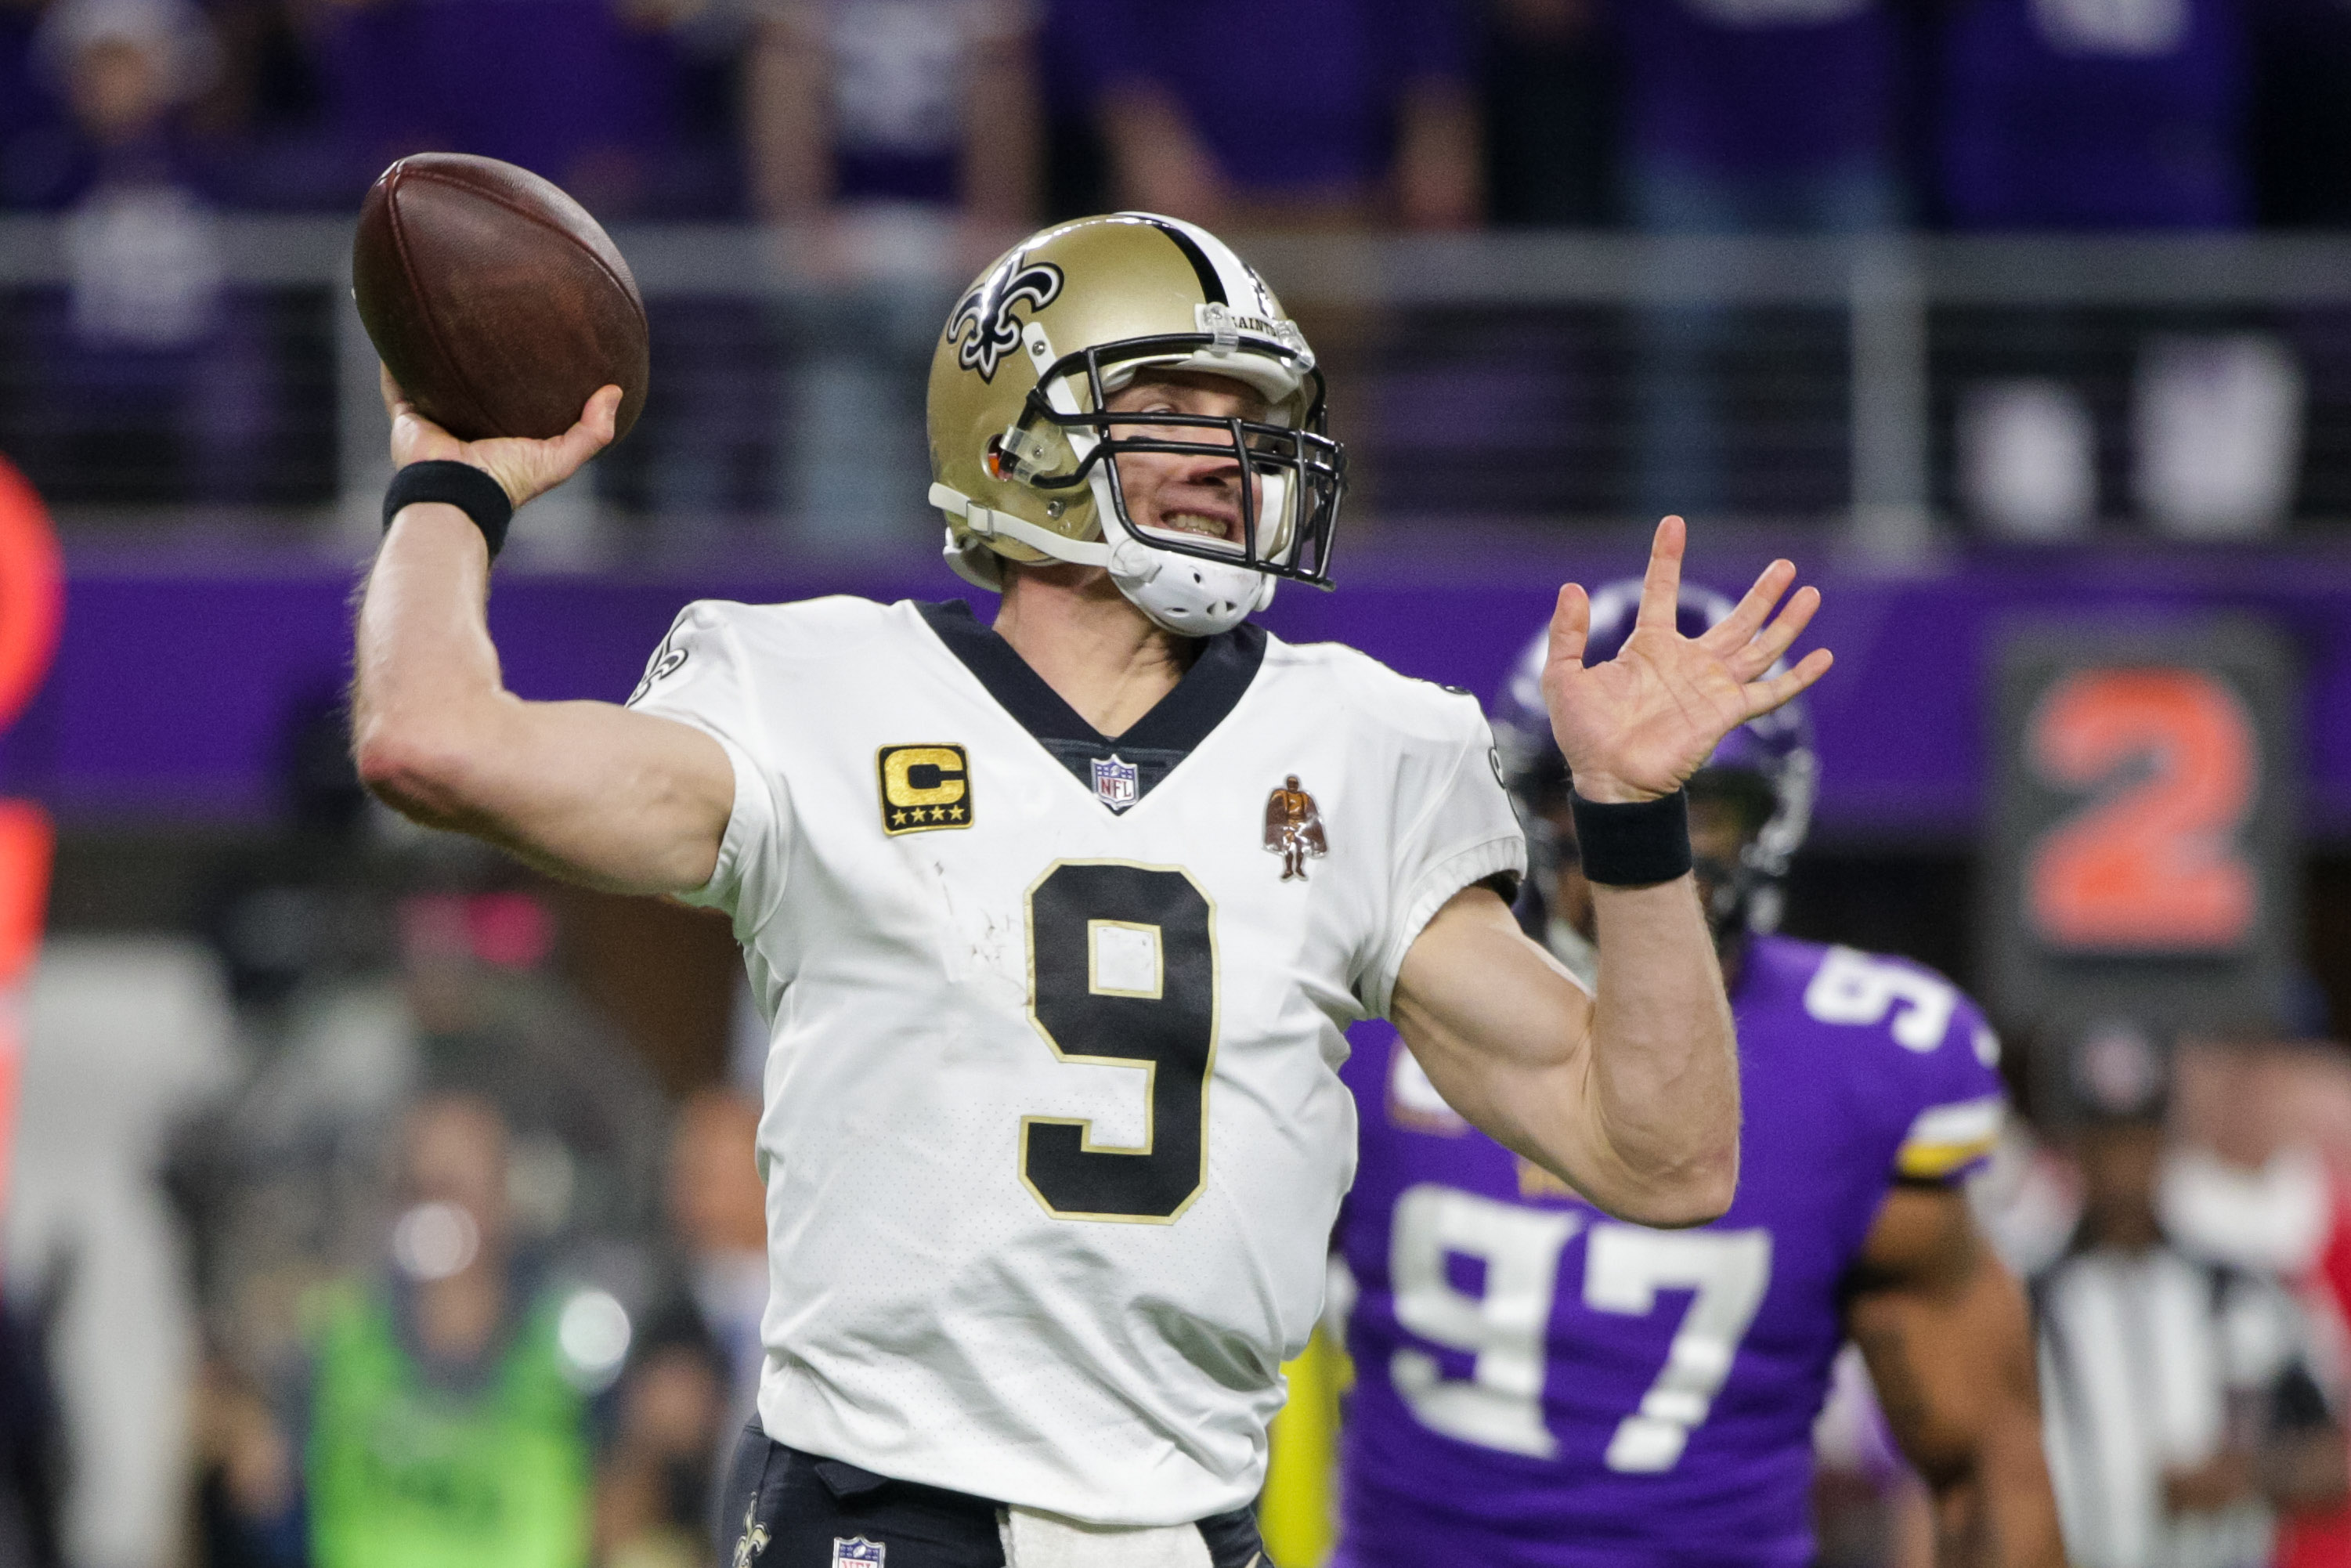 Jan 14, 2018; Minneapolis, MN, USA; New Orleans Saints quarterback Drew Brees (9) passes in the fourth quarter against the Minnesota Vikings at U.S. Bank Stadium. Mandatory Credit: Brad Rempel-USA TODAY Sports